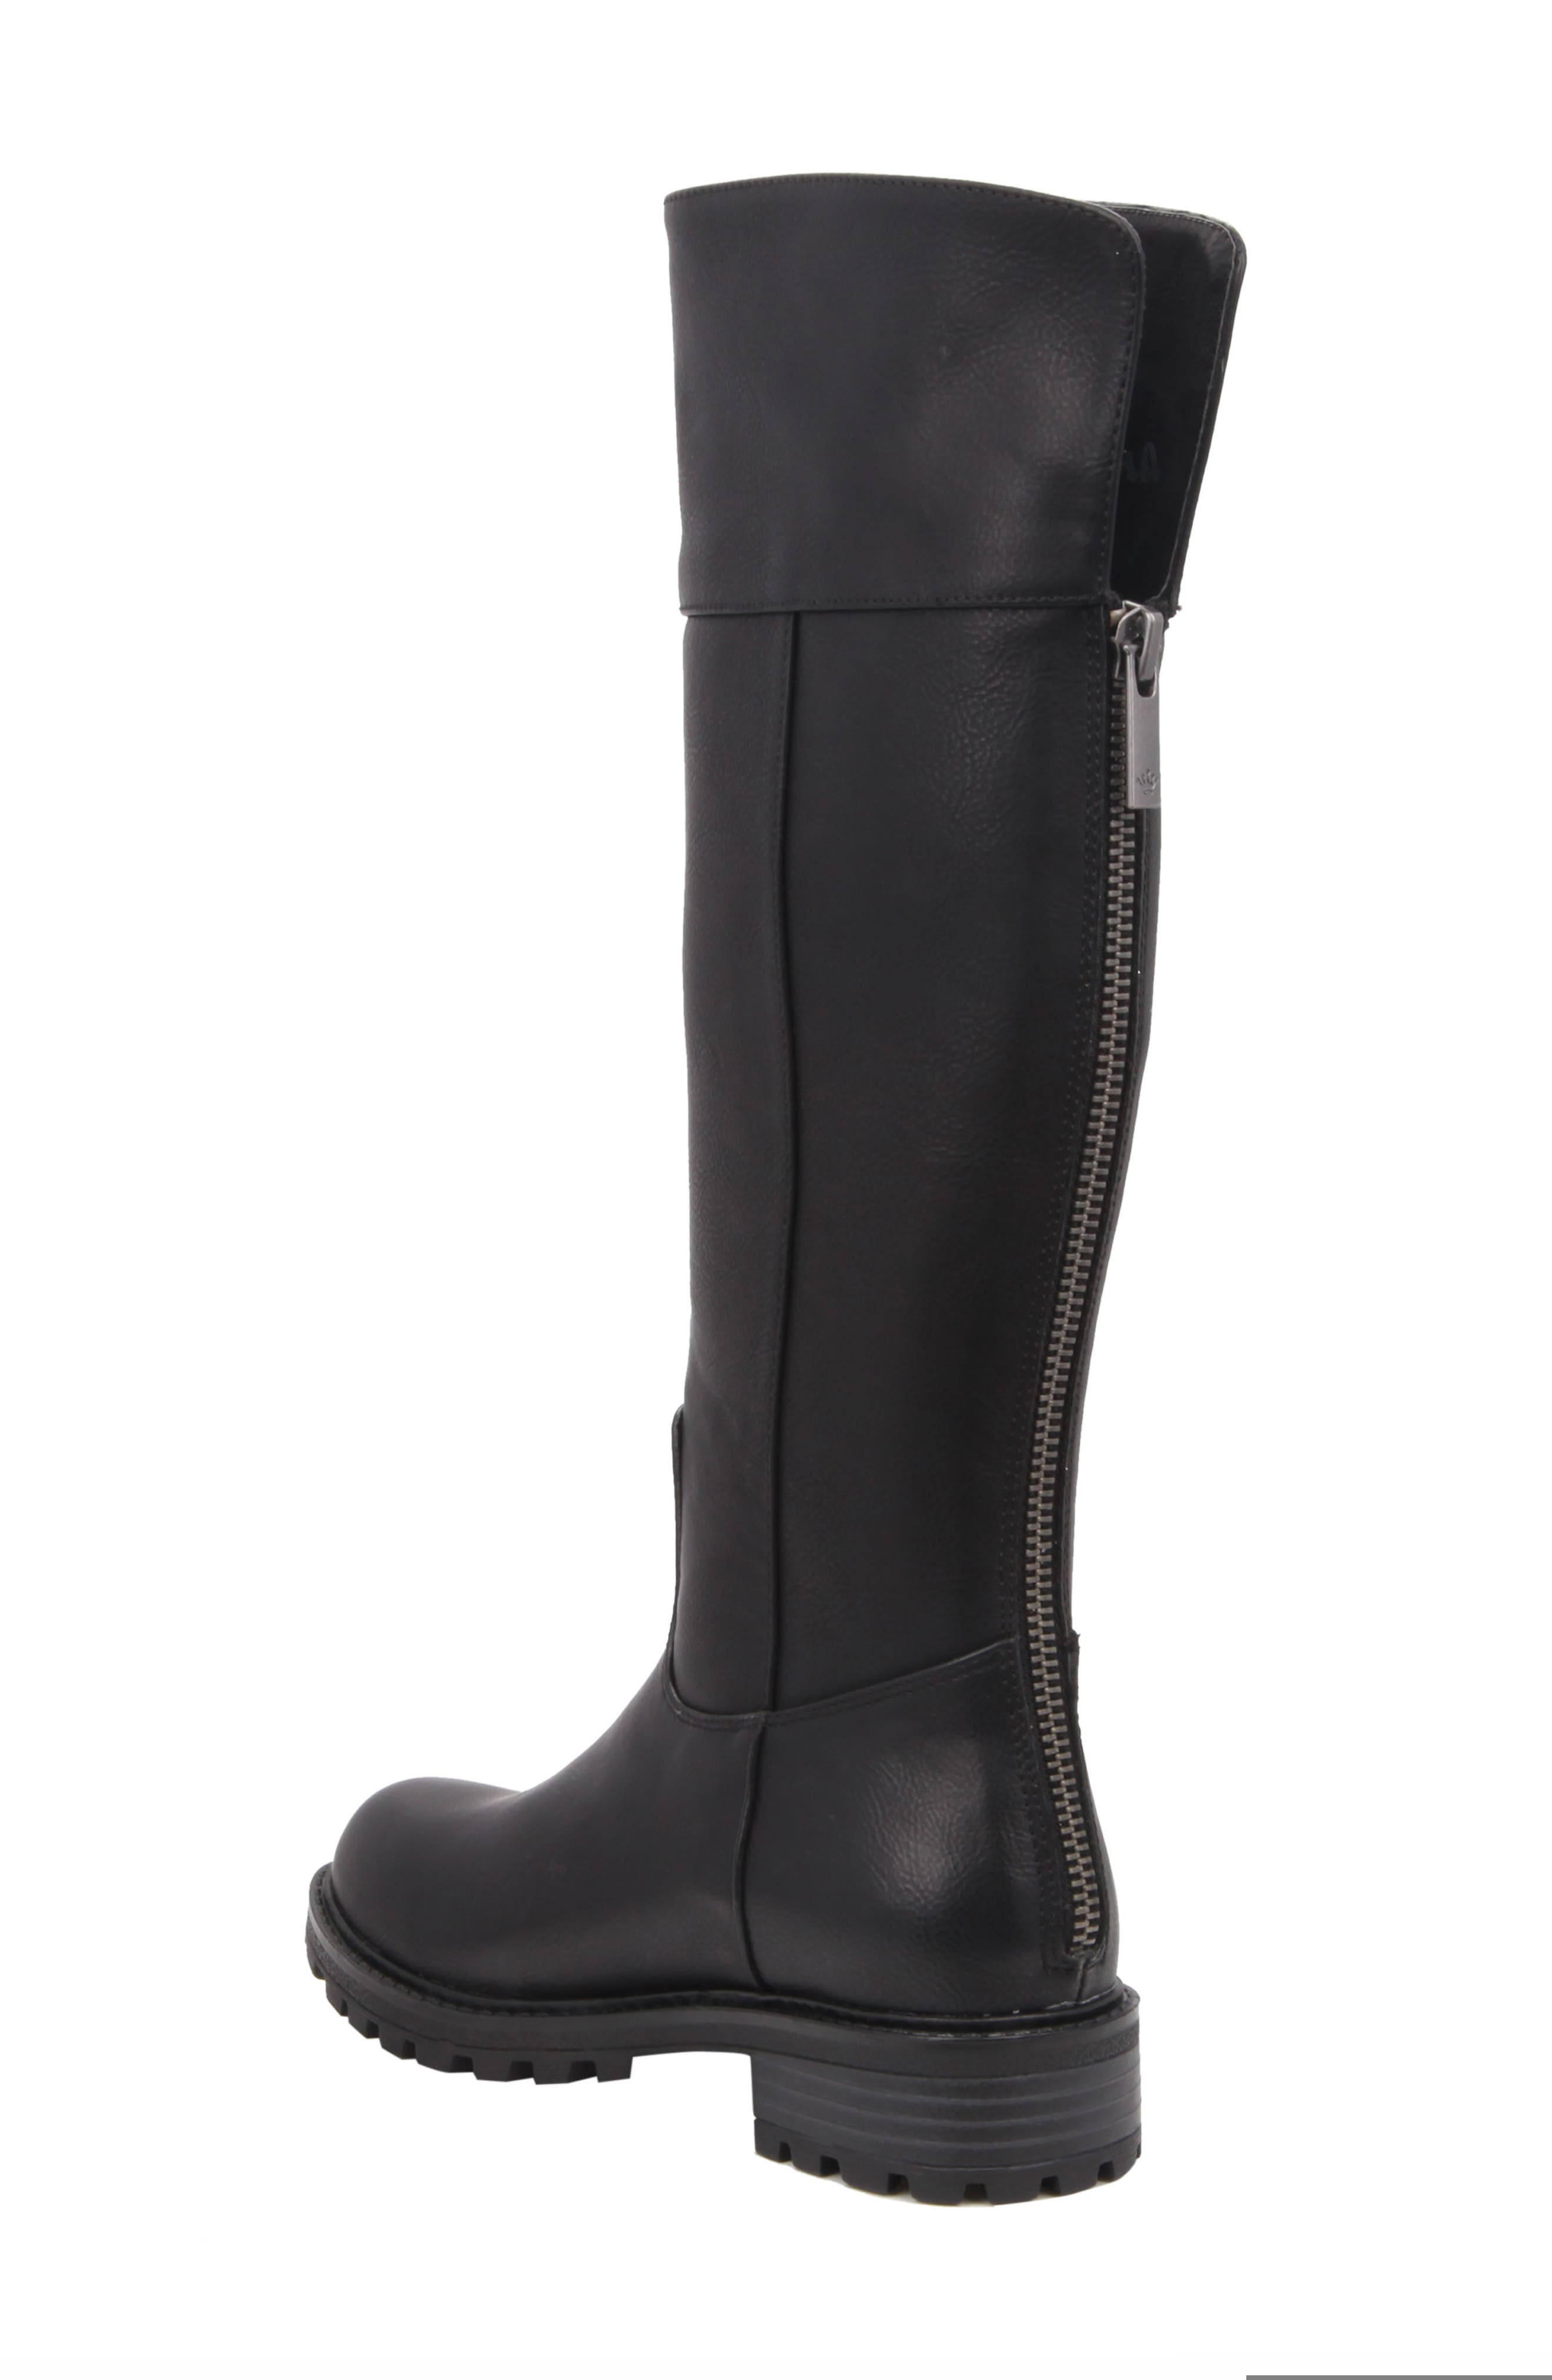 Nixie Tall Lugged Boot,                             Alternate thumbnail 2, color,                             Black Tumbled Leather